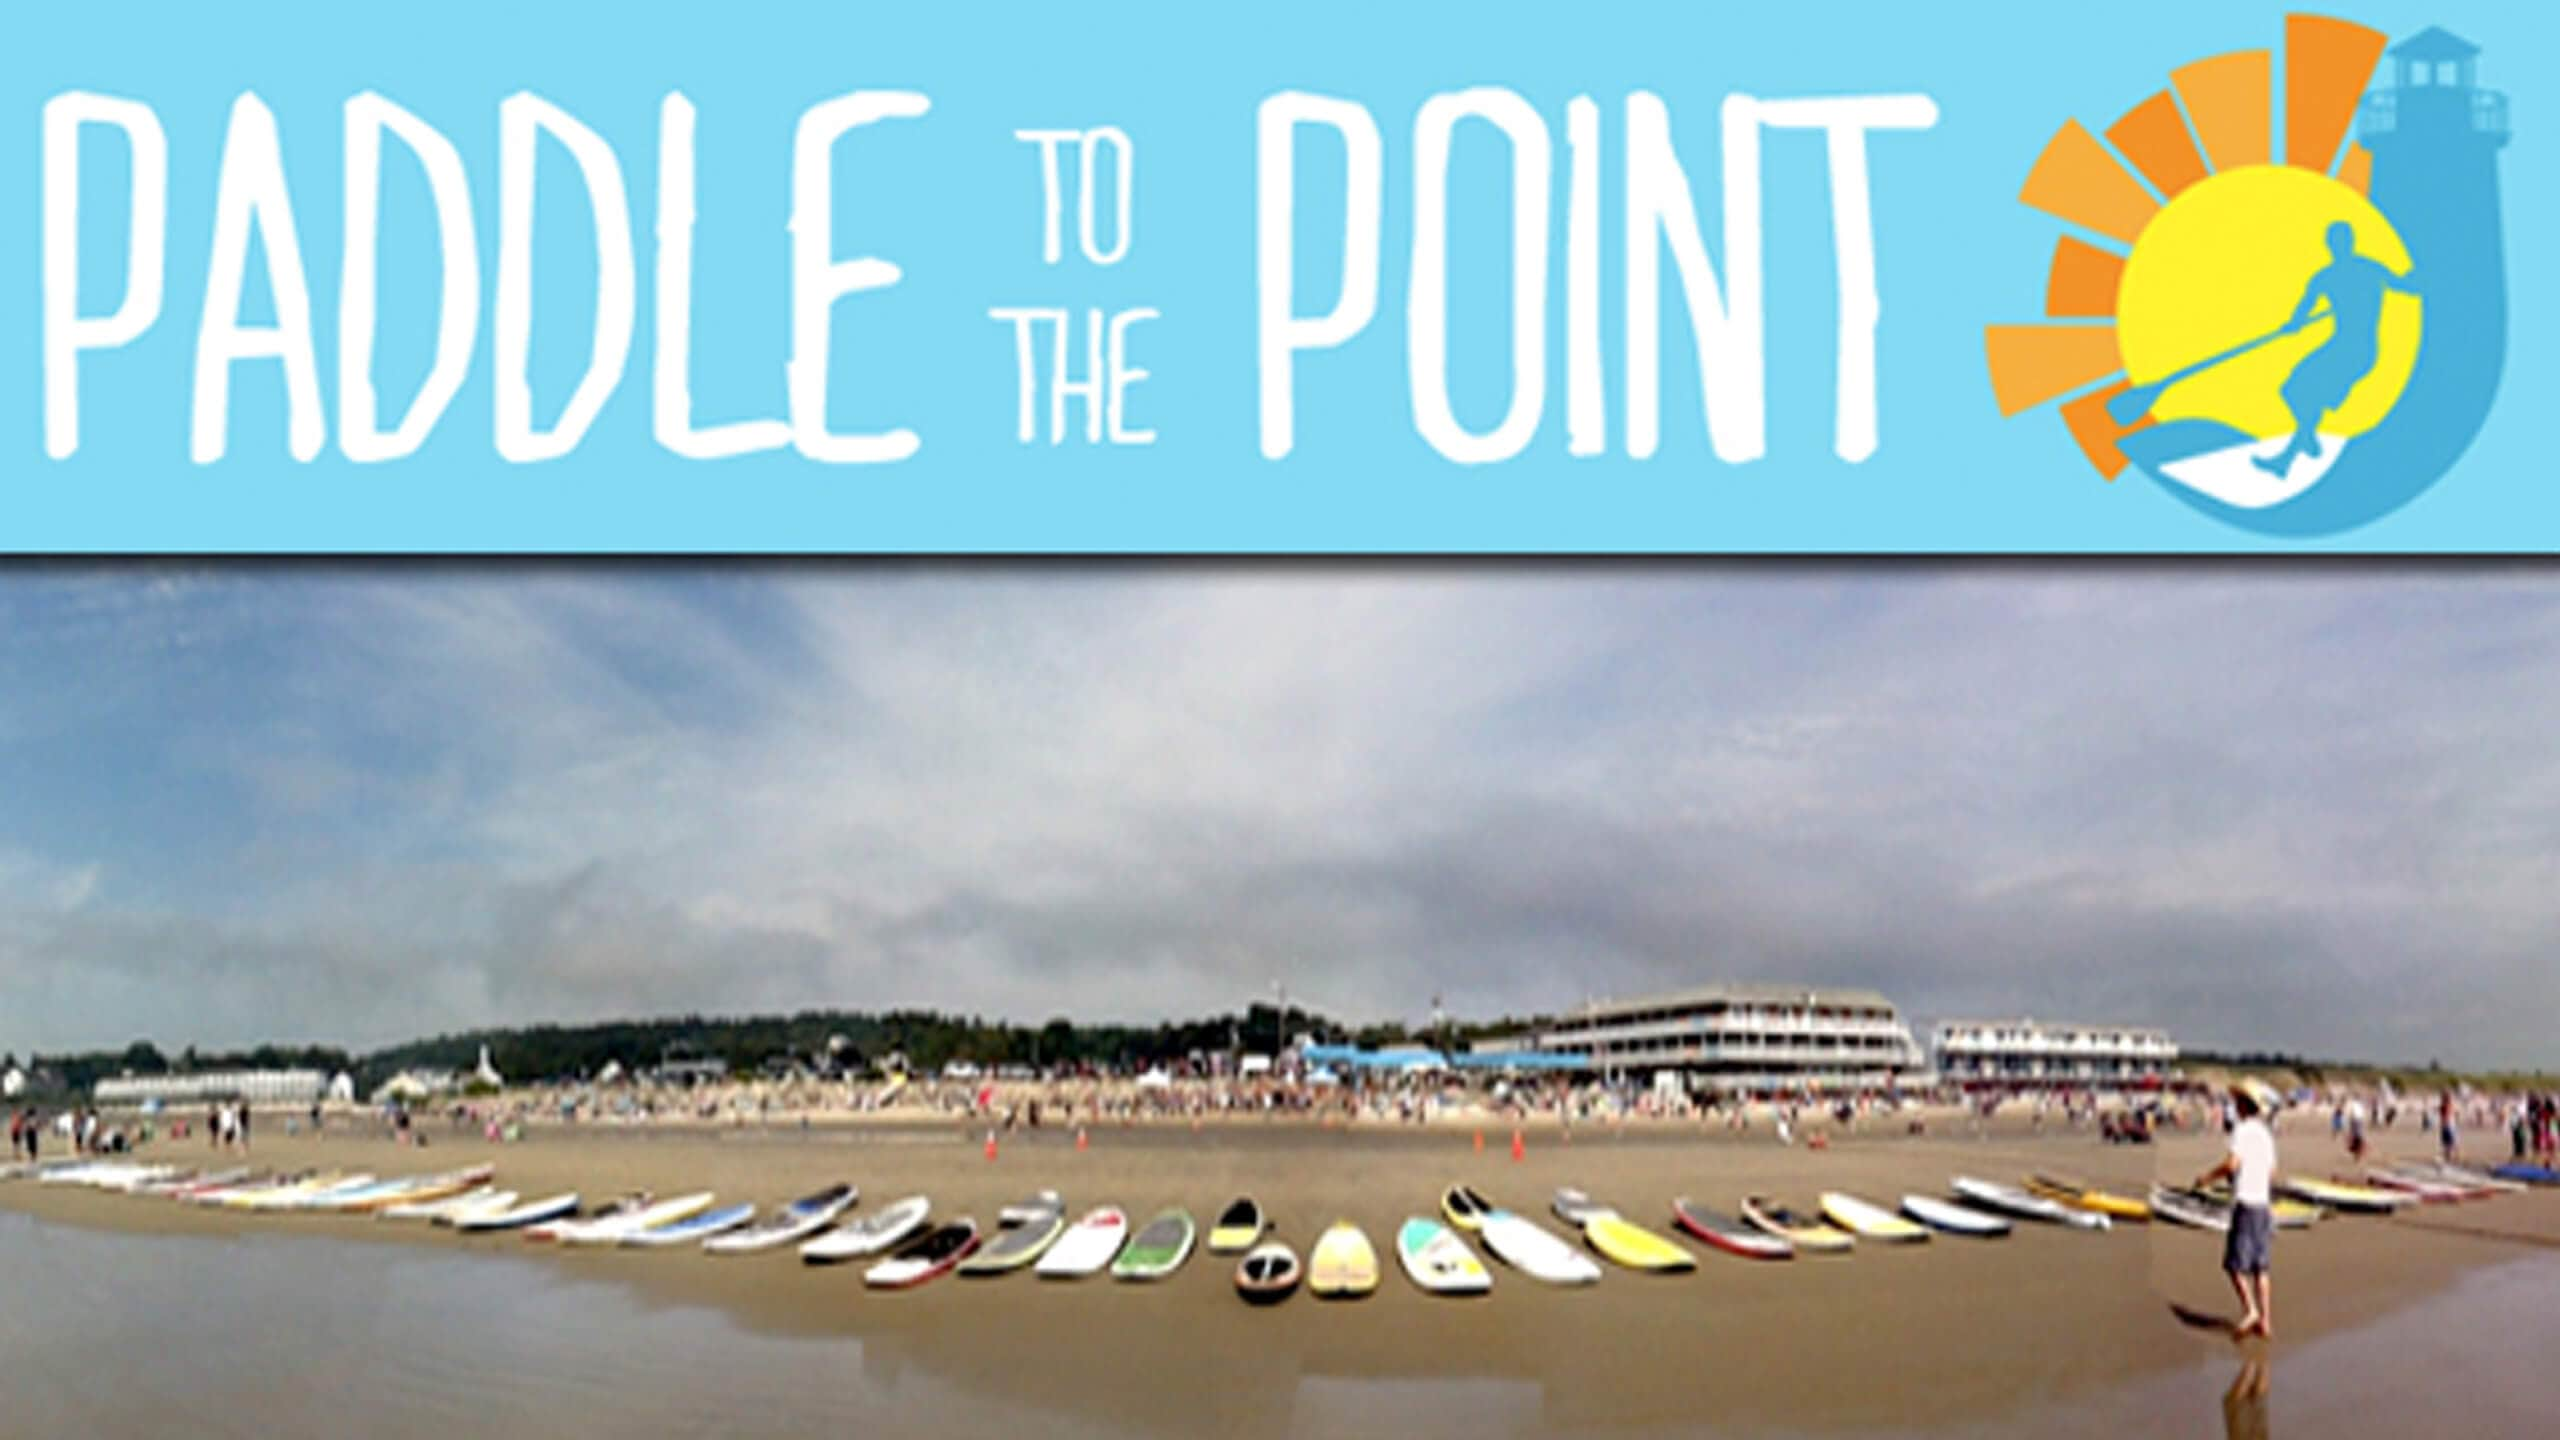 PADDLE THE POINT